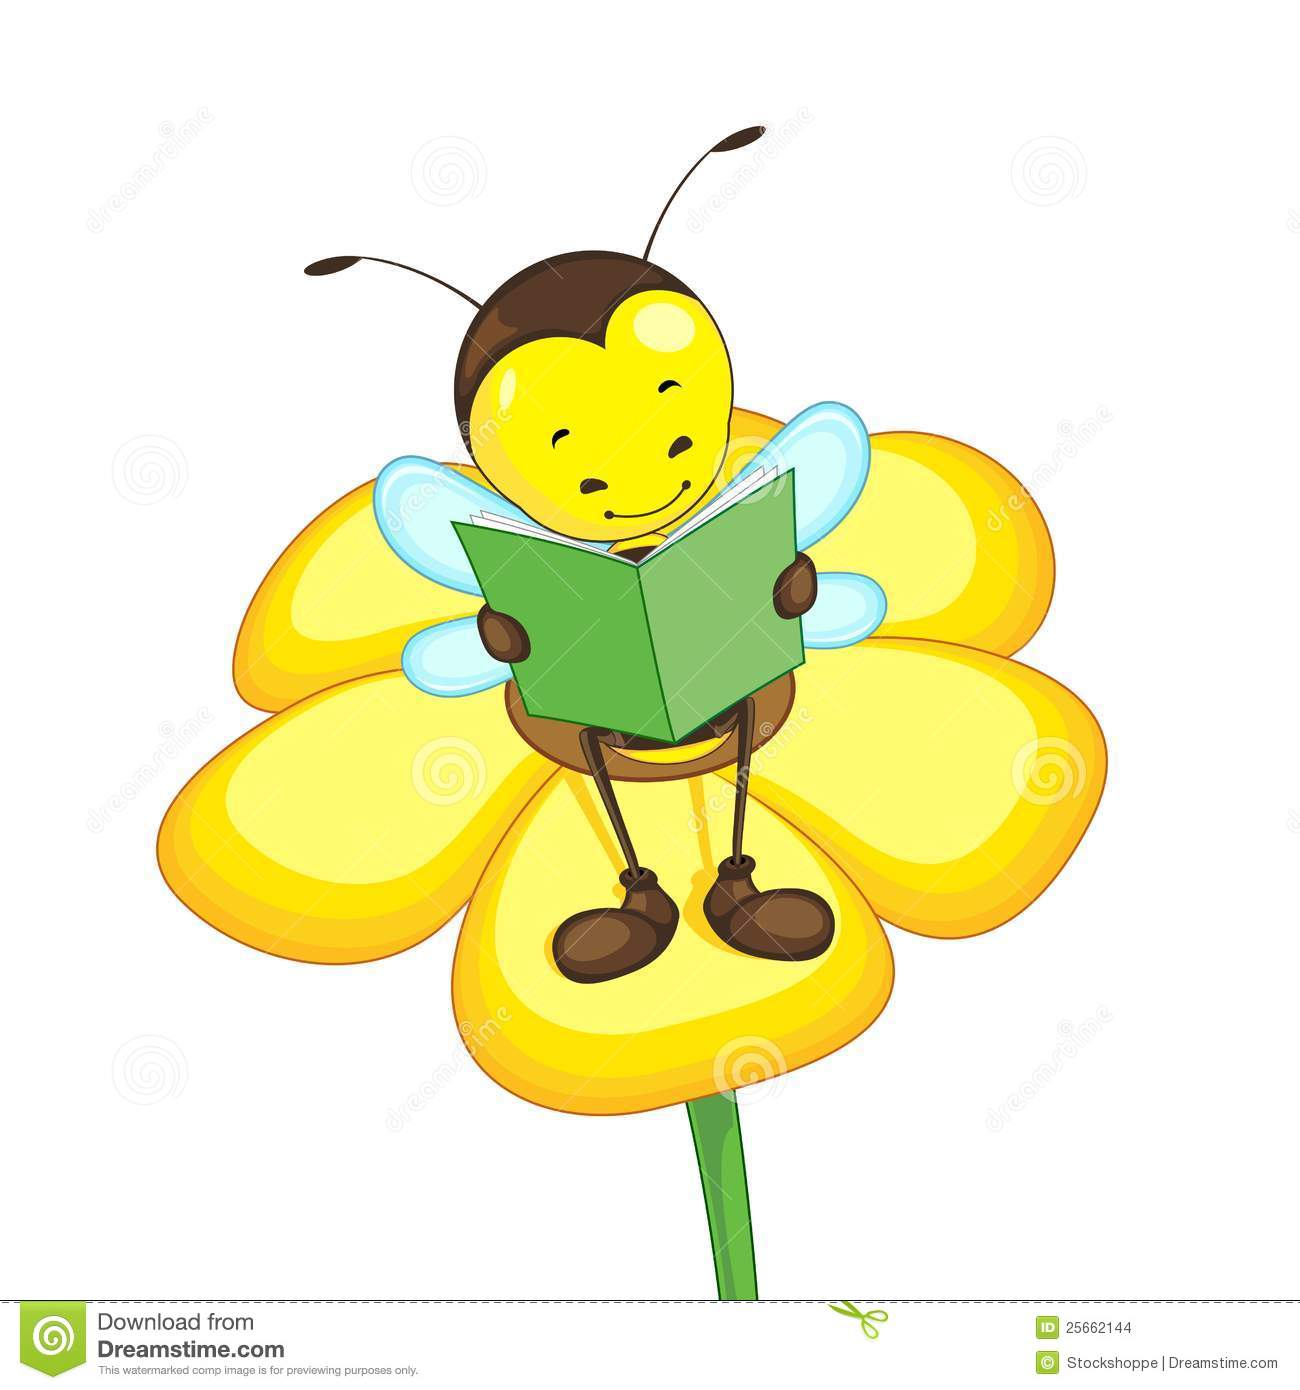 Bees and flowers clipart image free Bee And Flower Clipart - Clipart Kid image free